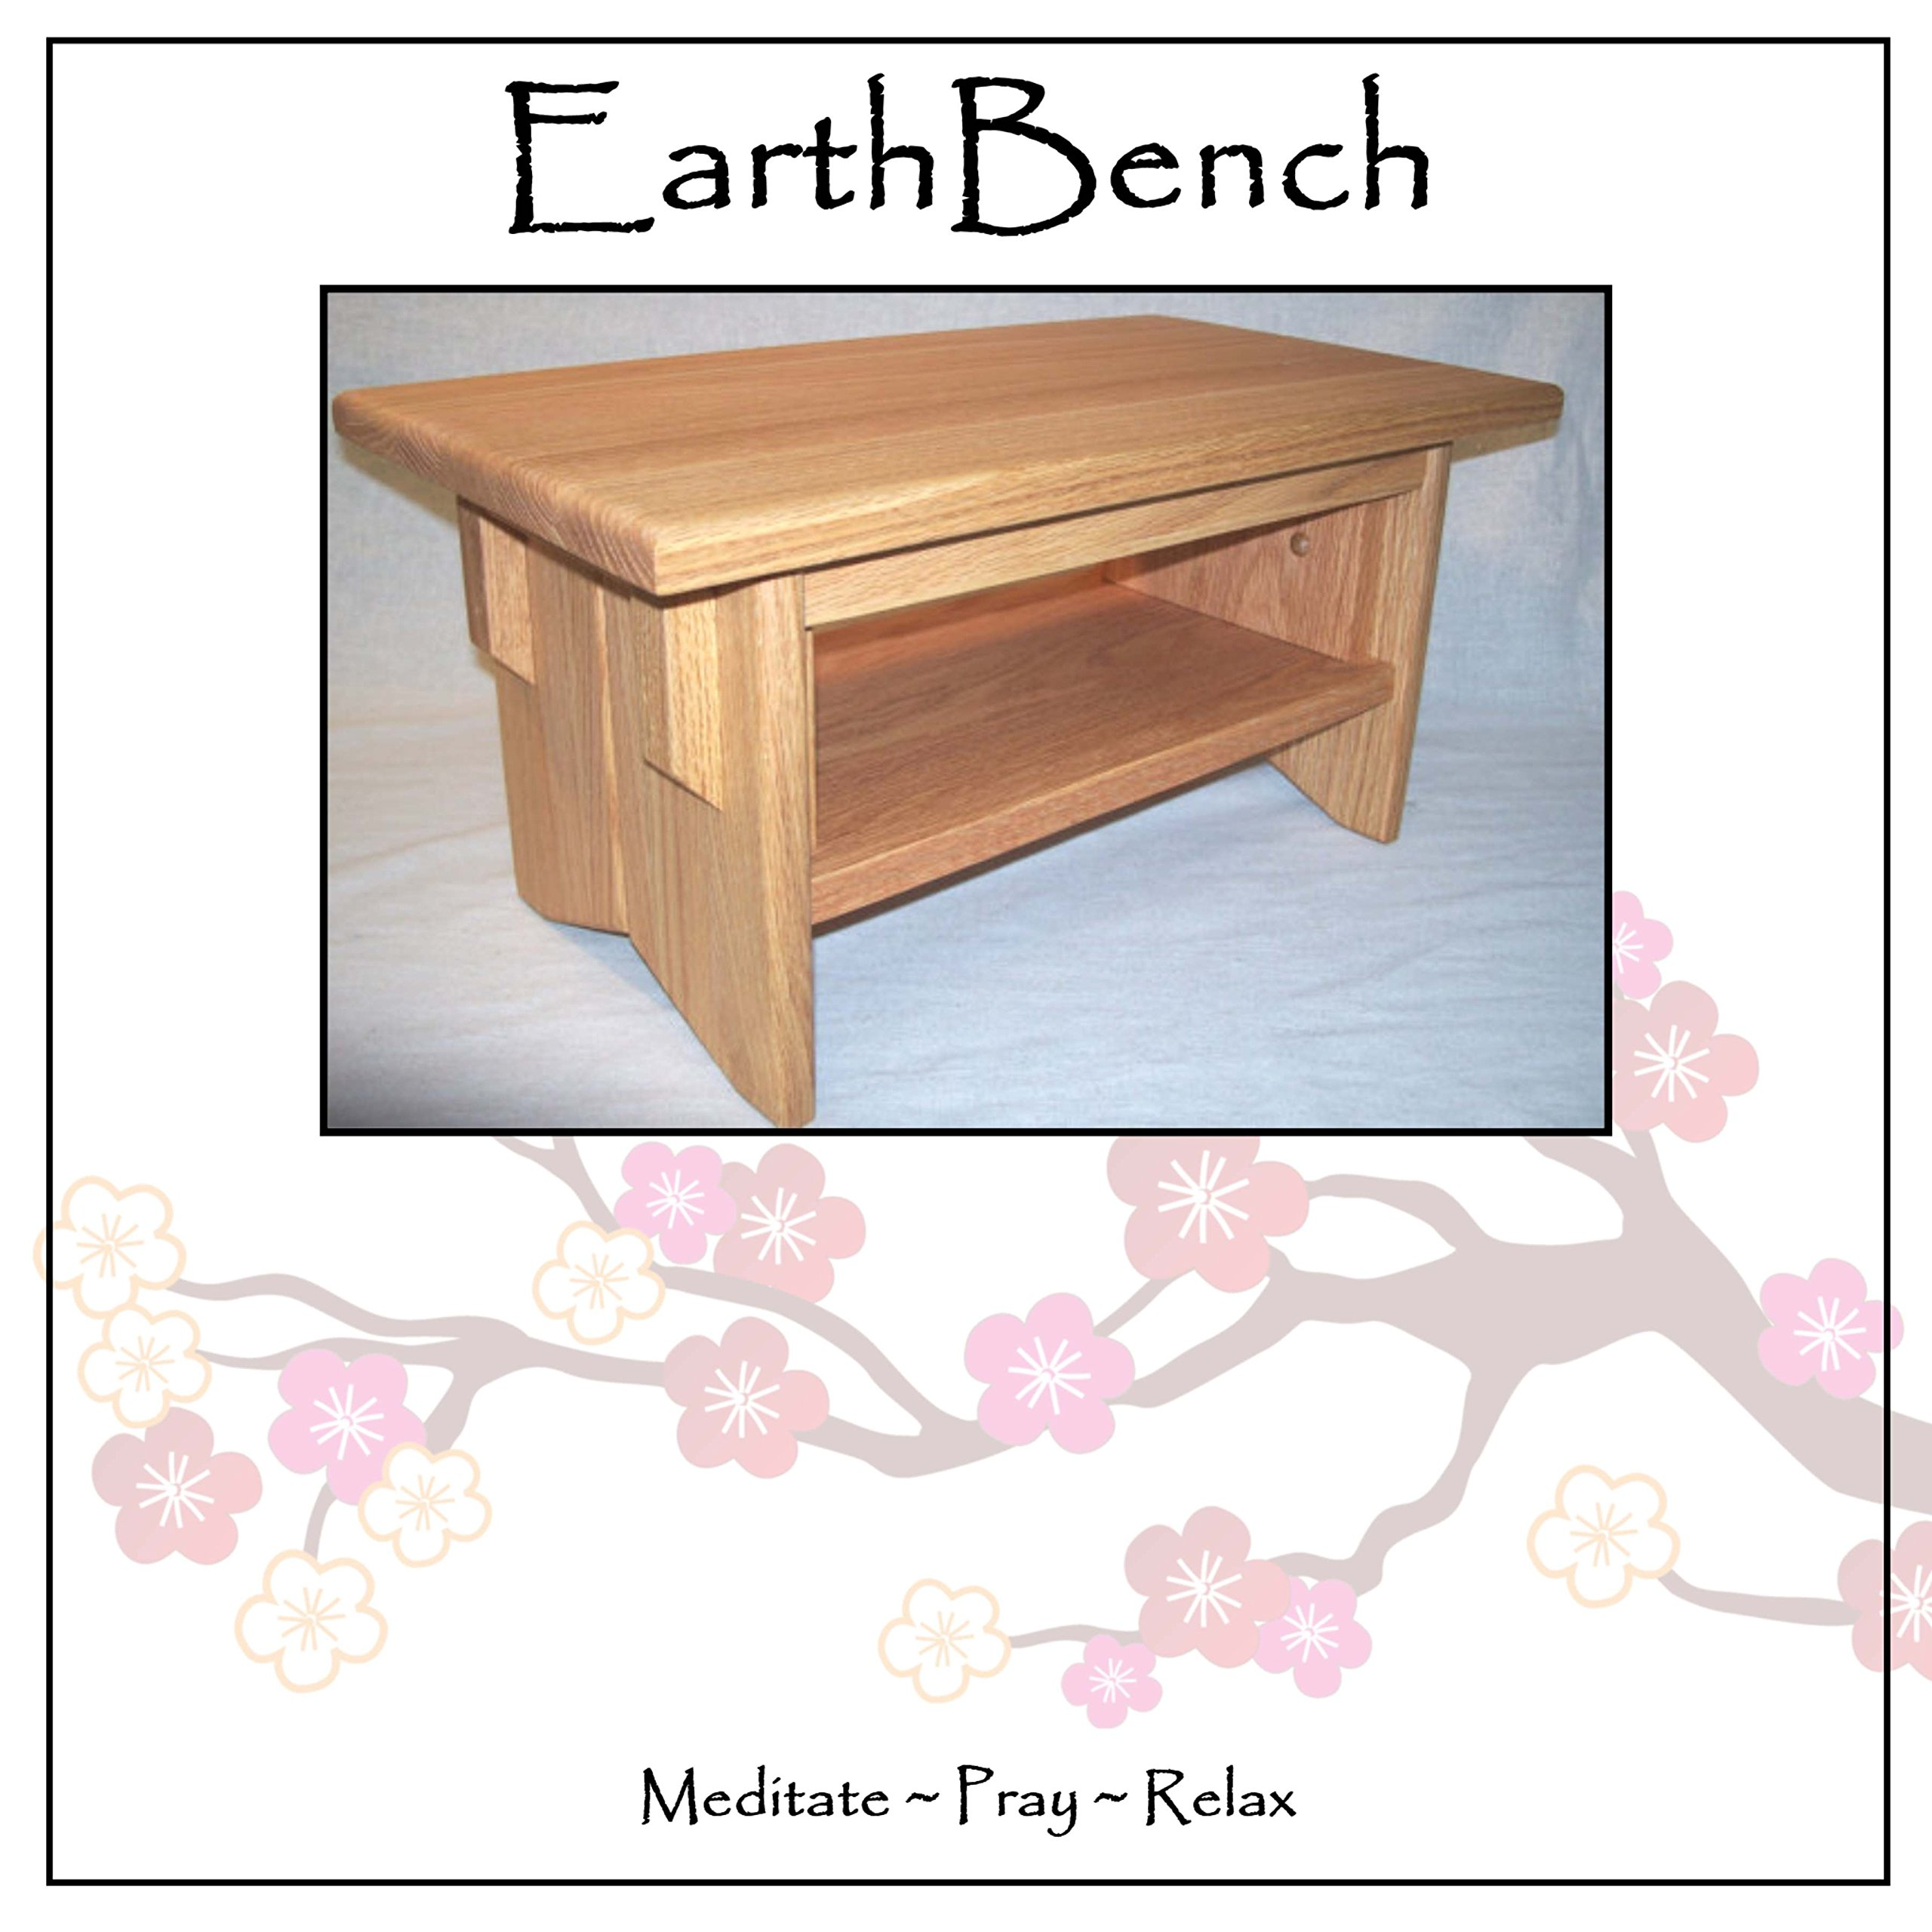 Deluxe Personal Altar with Shelf - EarthBench - Solid RED OAK Construction for Meditation, Prayer, or Contemplative Studies.